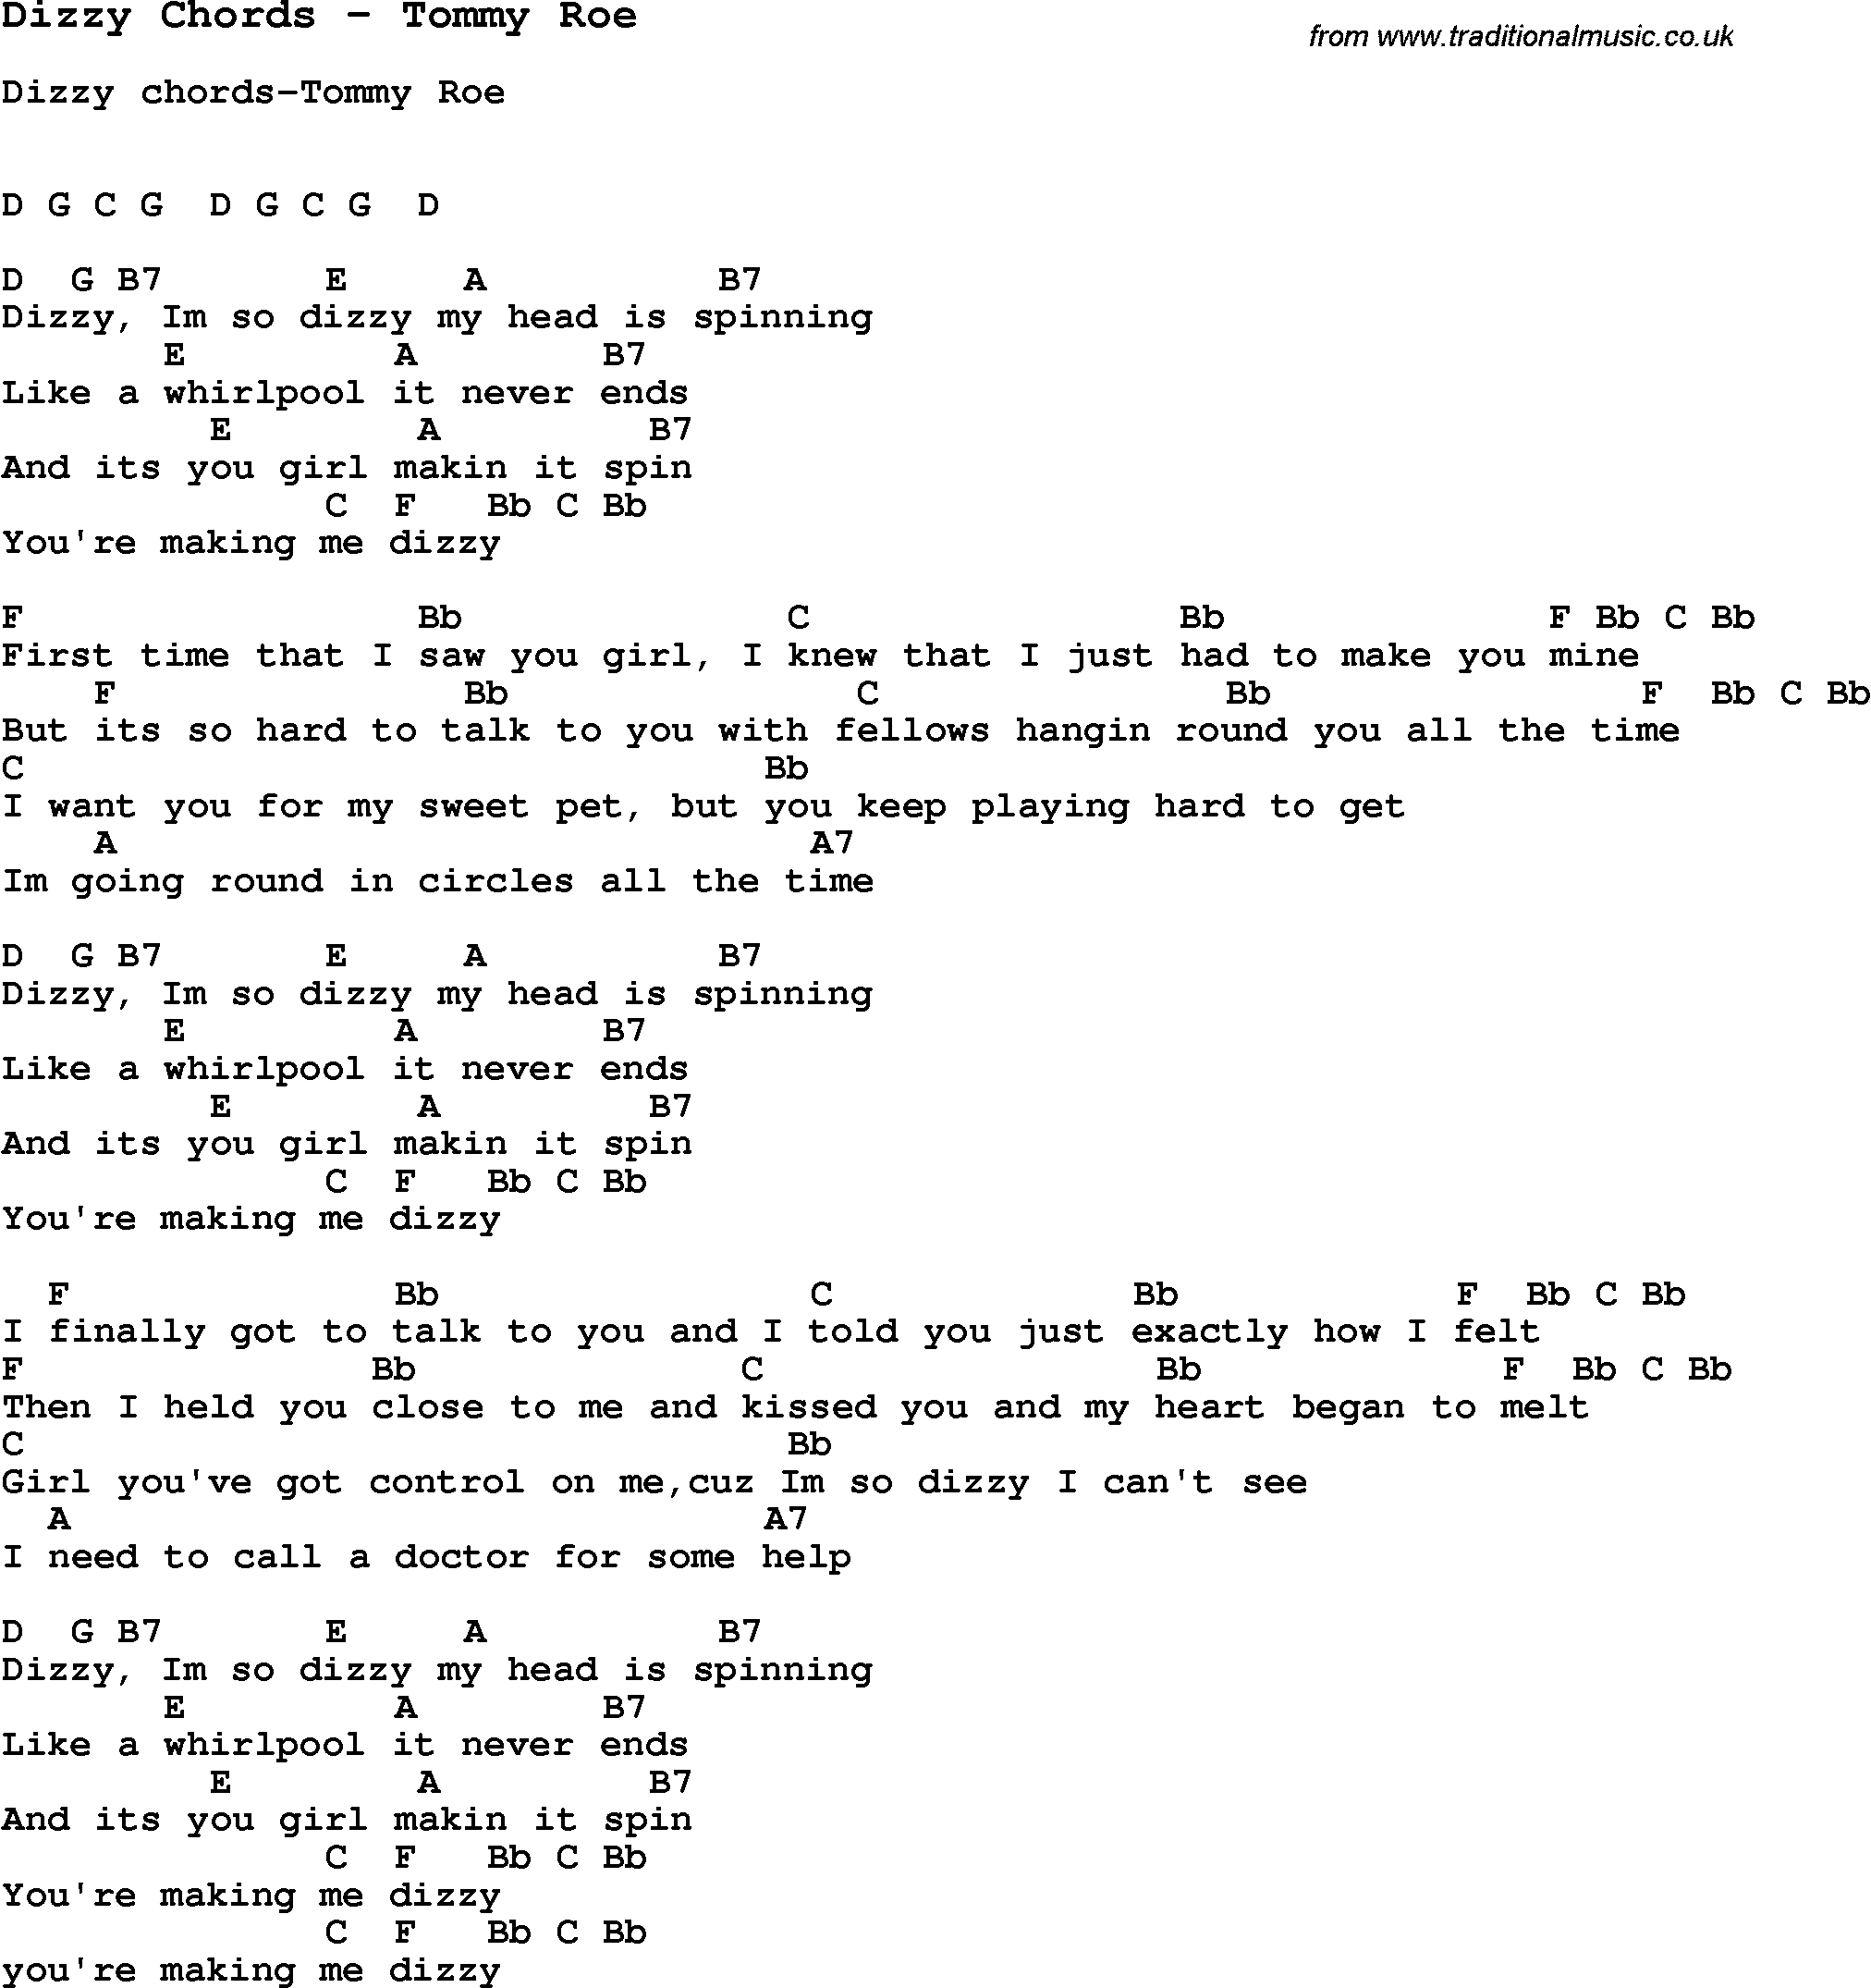 Song dizzy chords by tommy roe with lyrics for vocal performance song dizzy chords by tommy roe song lyric for vocal performance plus accompaniment chords for ukulele guitar banjo etc hexwebz Gallery